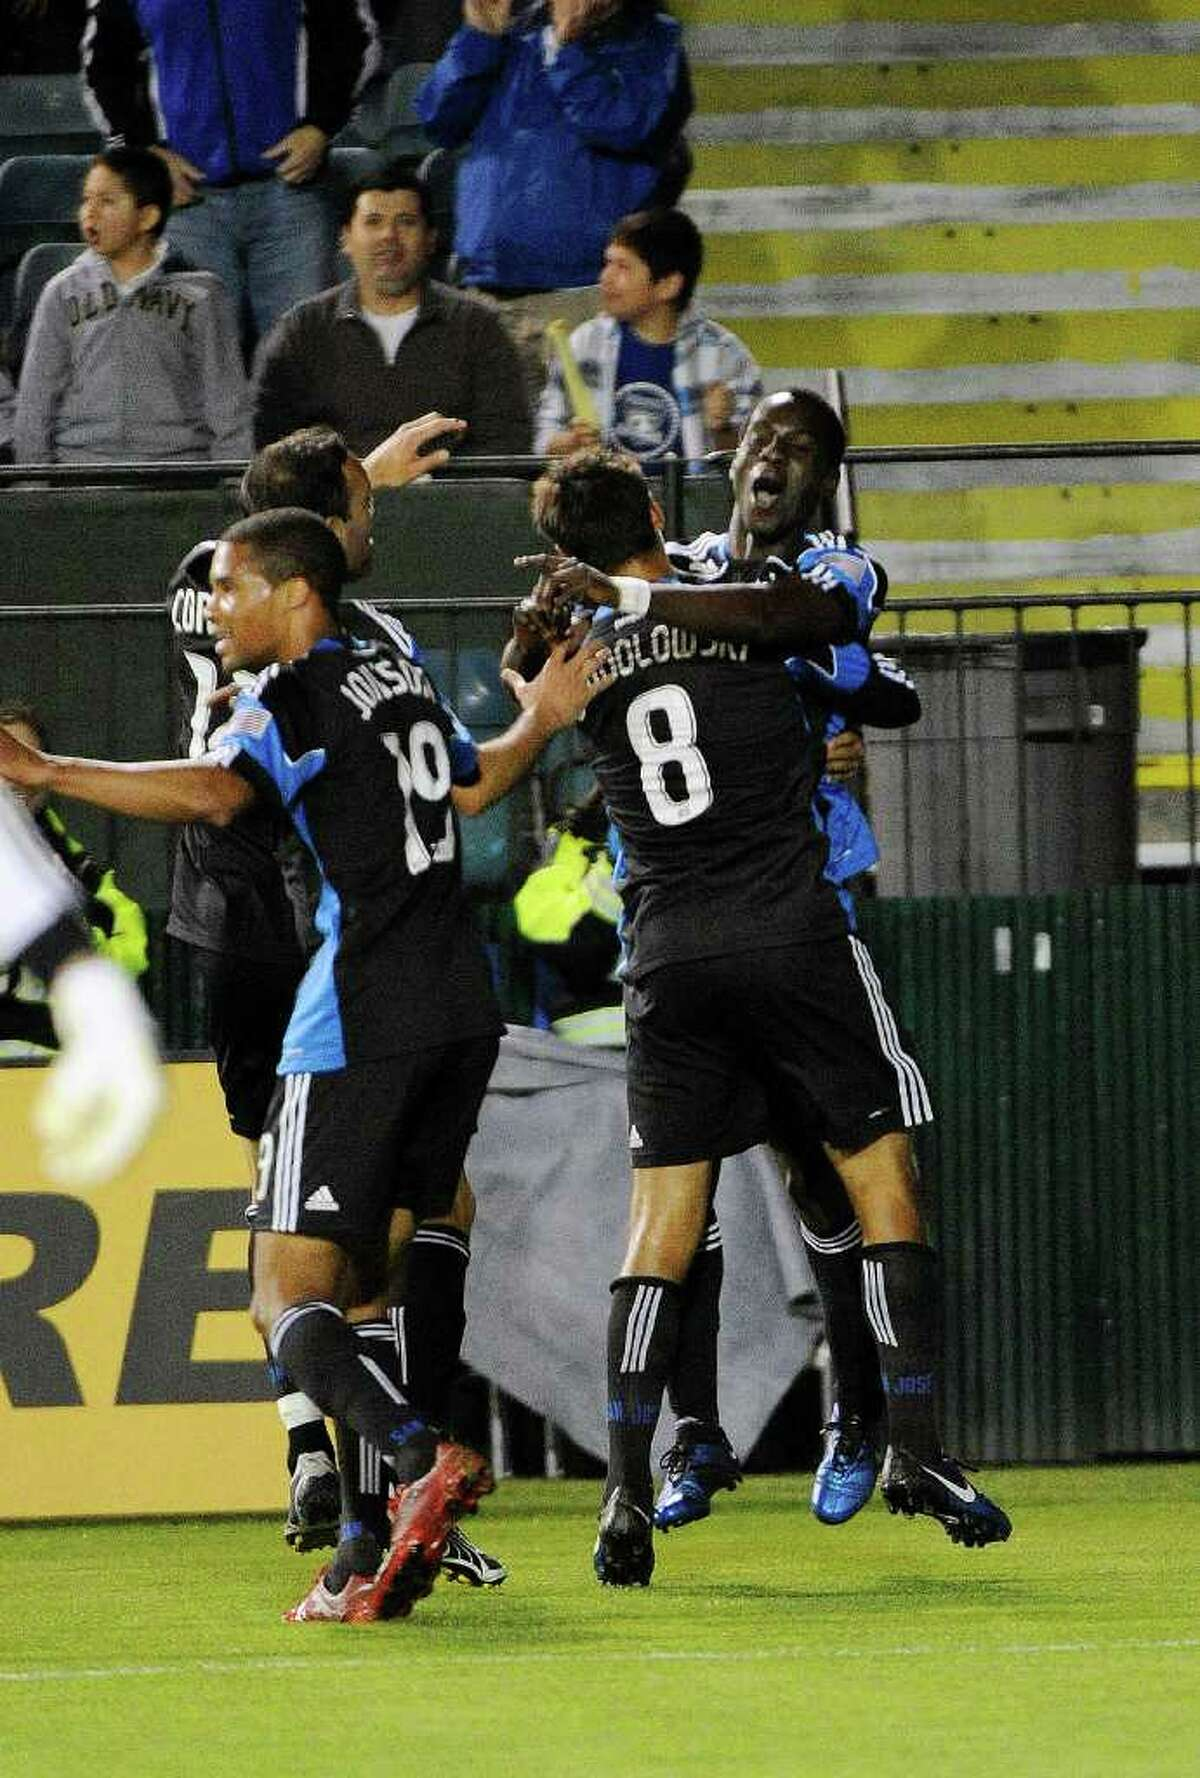 Simon Dawkins #10 of the San Jose Earthquakes after scoring a goal celebrates with teammate Chris Wondolowski against the Seattle Sounders FC. (Photo by Thearon W. Henderson/Getty Images)